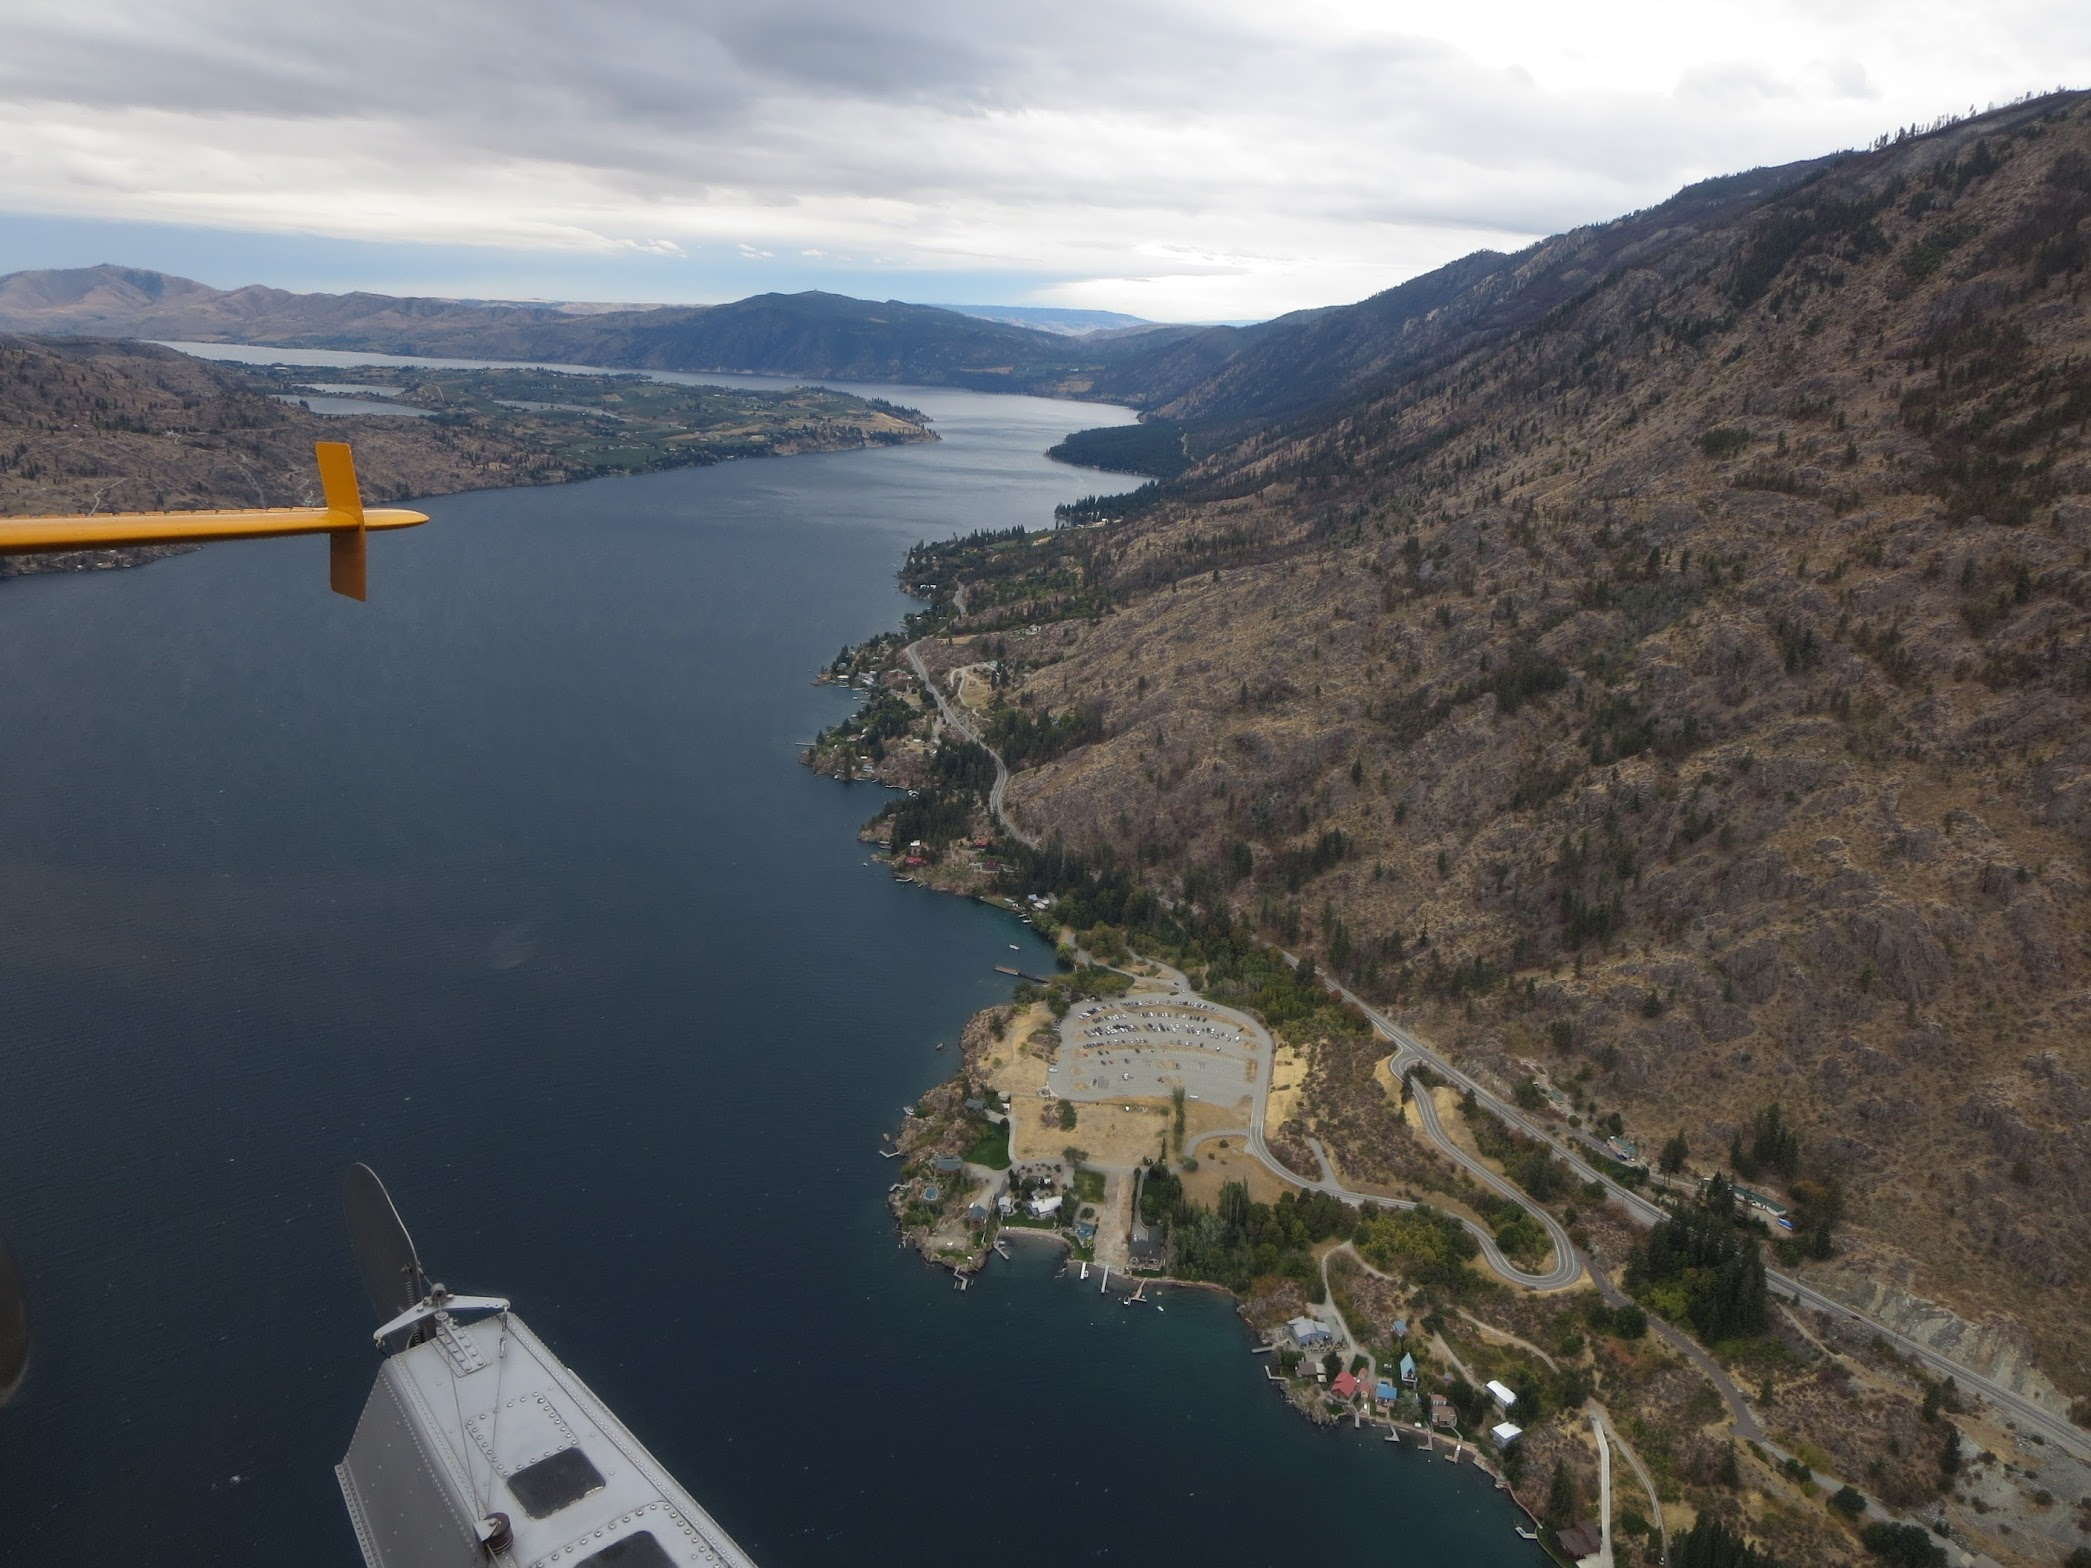 Flying above Lake Chelan on the way to Stehekin